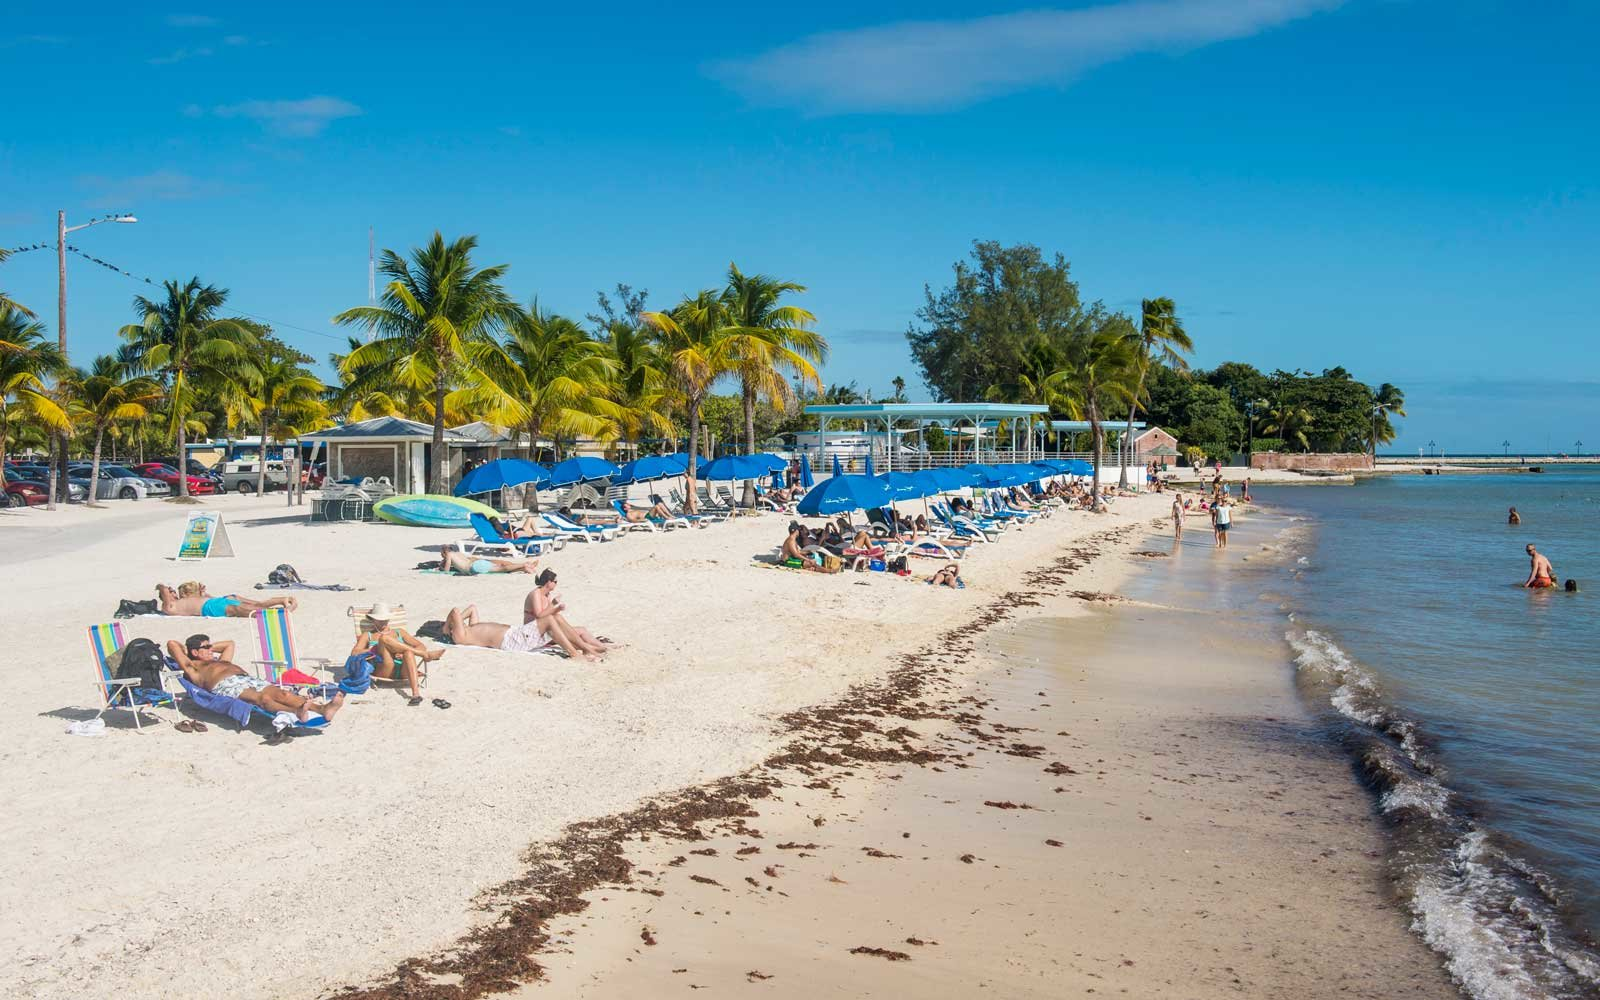 Sunbathers at Higgs Beach, Key West, Florida